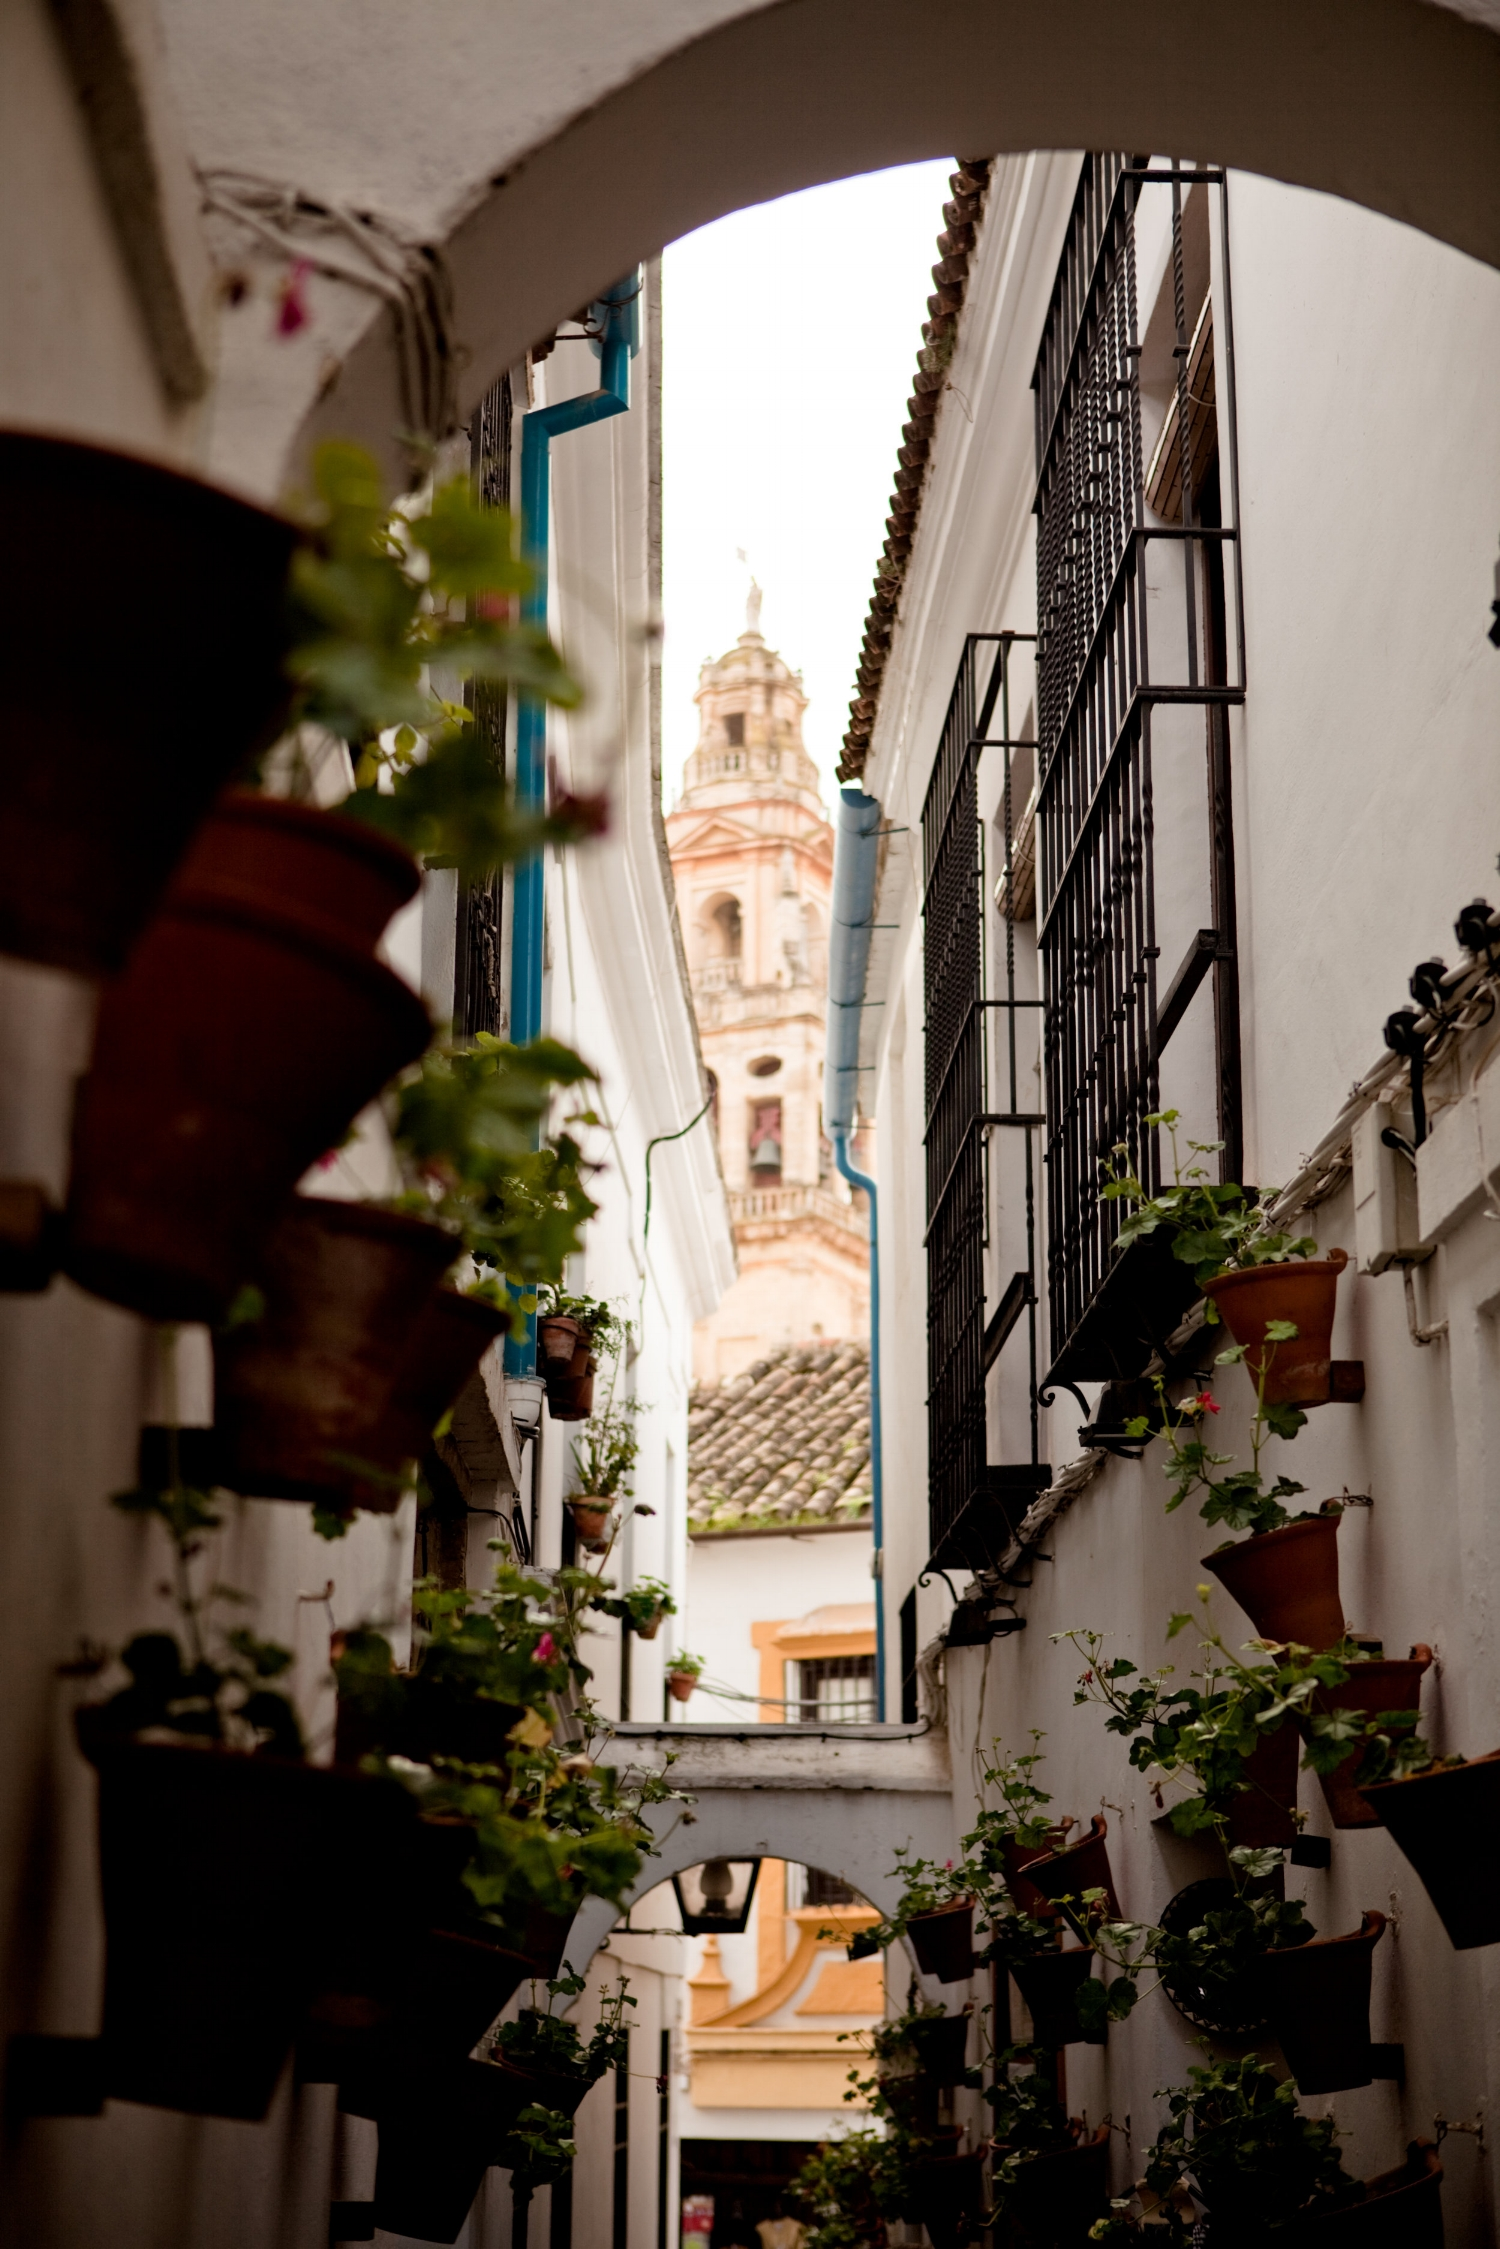 Another view of the Bell Tower from the Judería